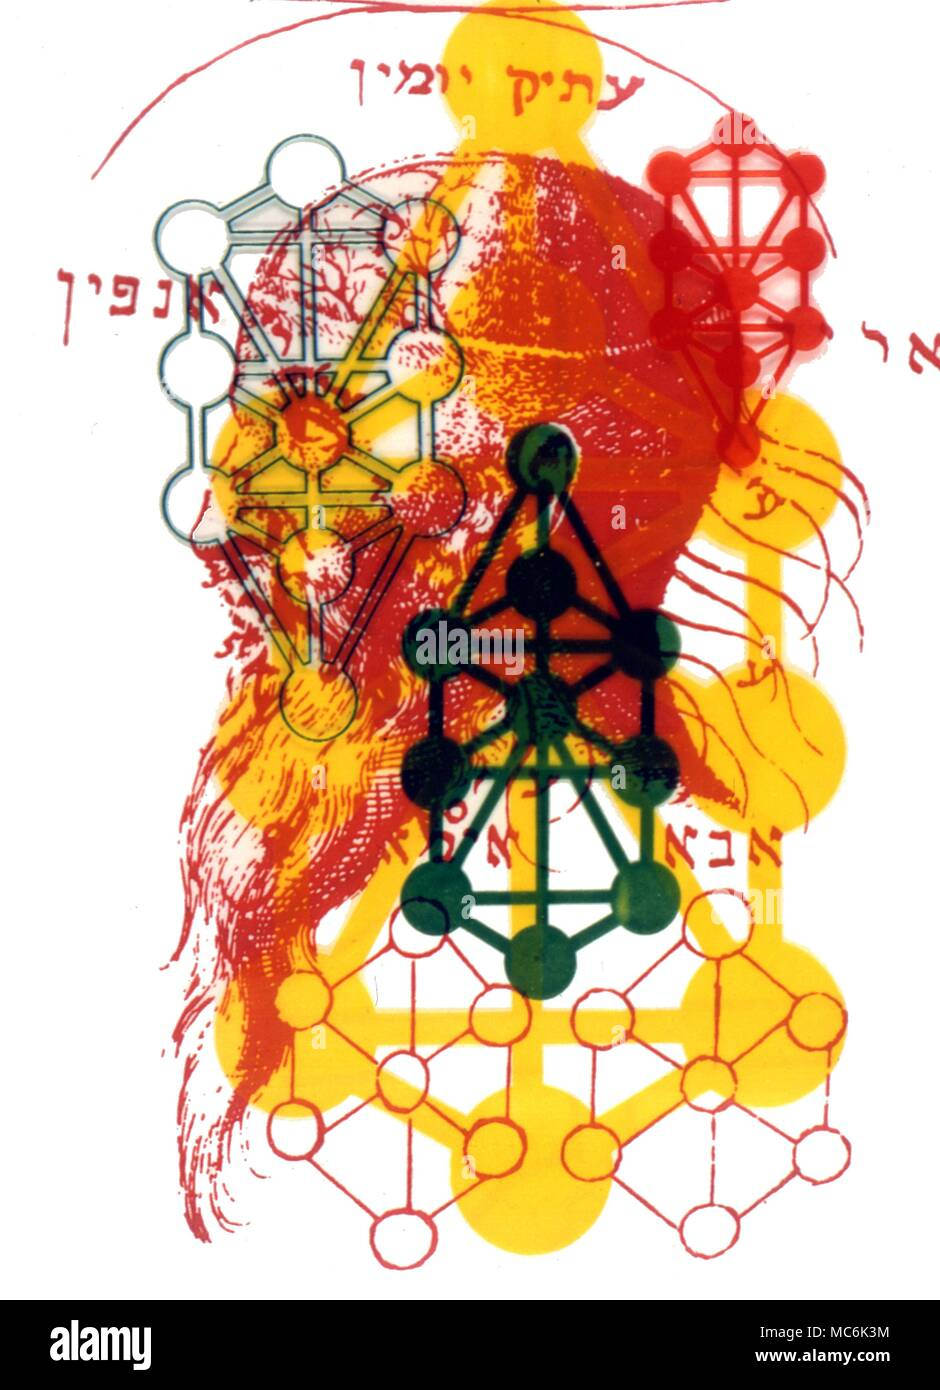 Tree Of Life Kabbalah High Resolution Stock Photography And Images Alamy The dimension which overlaps all others. https www alamy com cabbala adam kadmon the head of adam kadmon overlaid with the sephirothic tree or tree of life cabbala n sometimes called kabbalah has two meanings the first being a body of mystical teachings of rabbinical origin which are based on an esoteric interpretation of the hebrew scriptures the cabbala is also known as a secret doctrine resembling these teachings a traditionally secret esoteric or occult matter the sephirothic tree consists of ten globes of luminous splendor arranged in three vertical columns and connected by 22 channels or paths image179626264 html